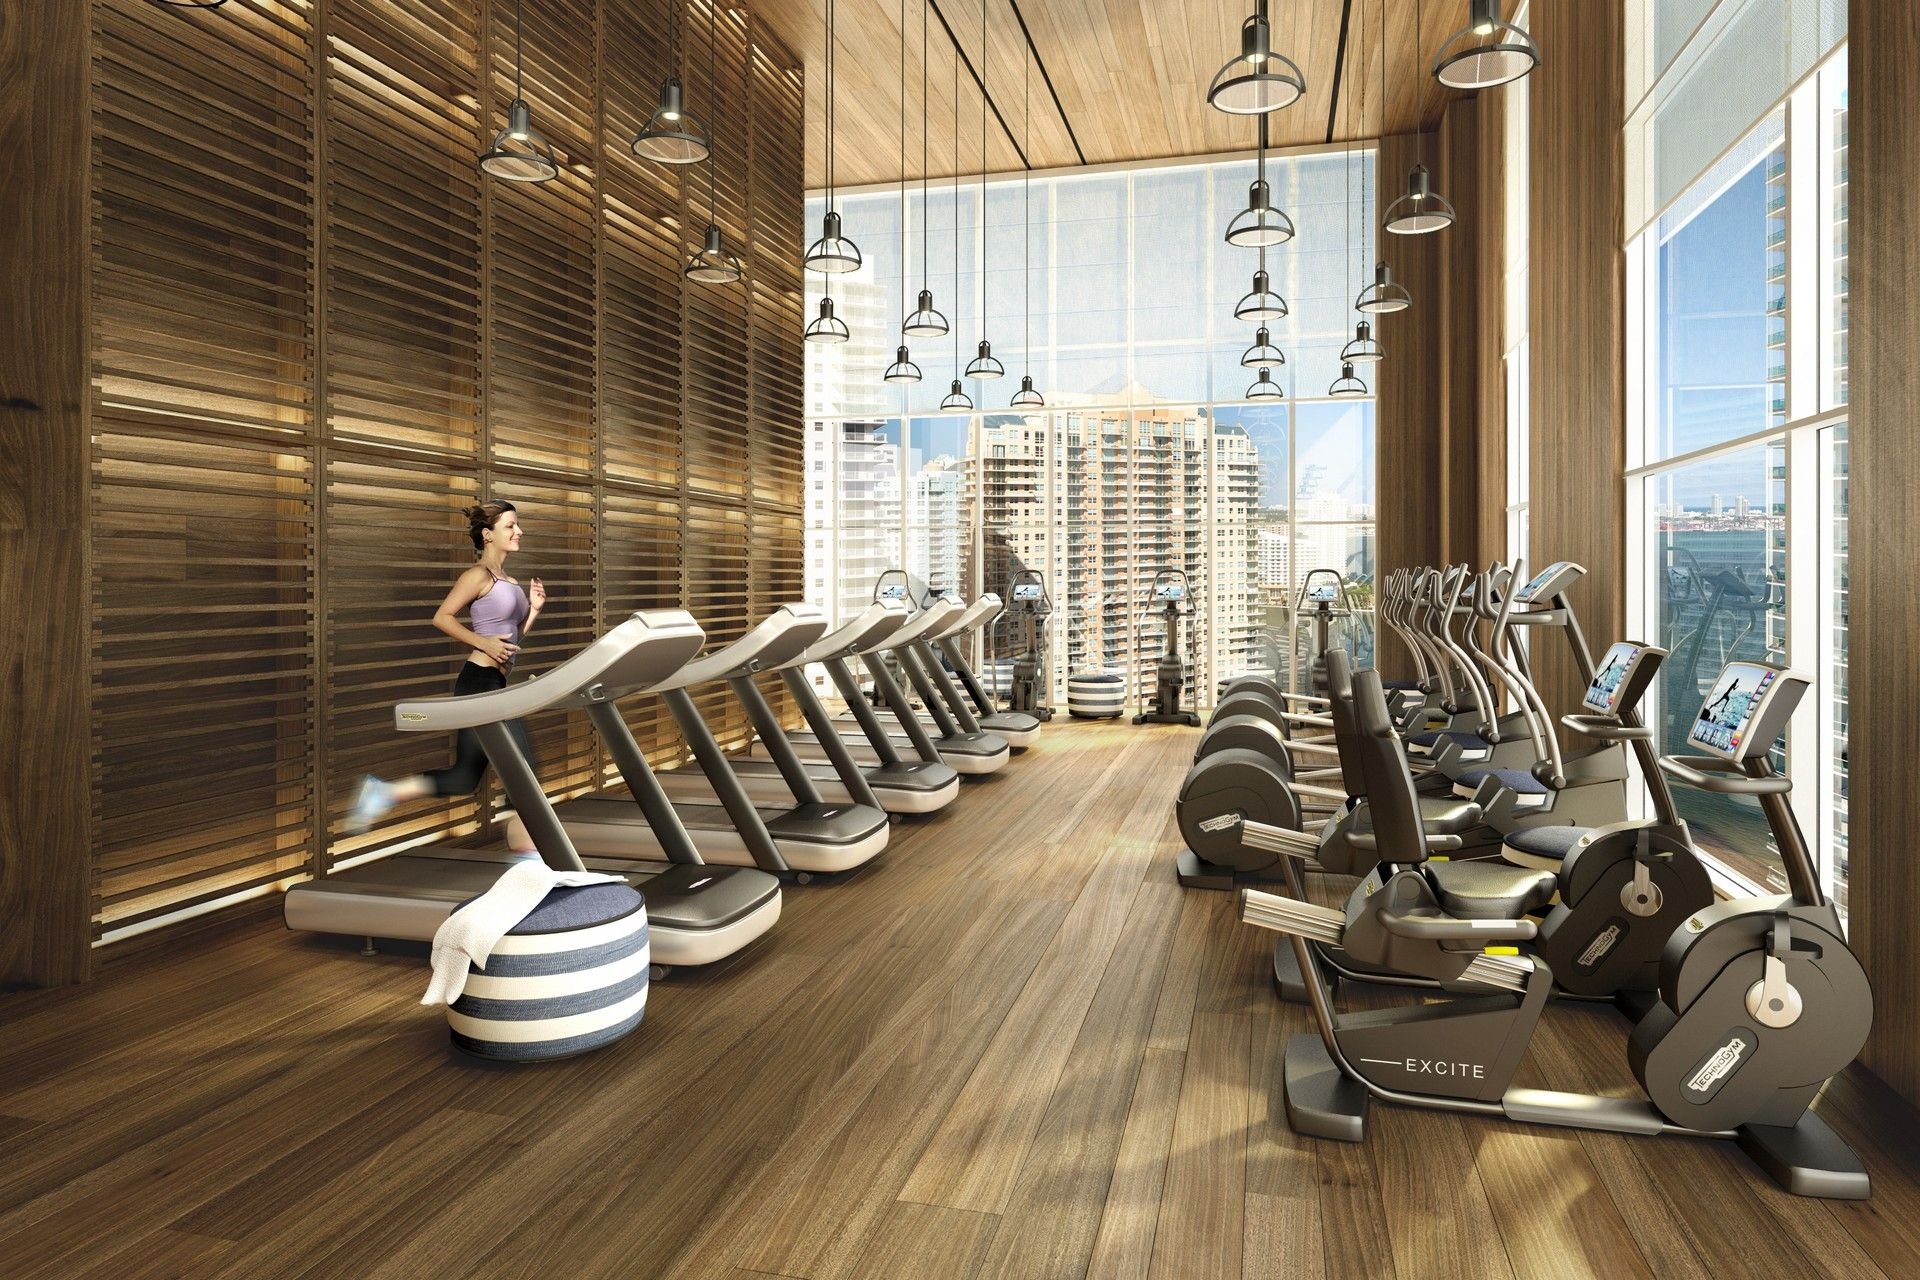 Brickellhouse Healthclub Rendering With Images Gym Interior